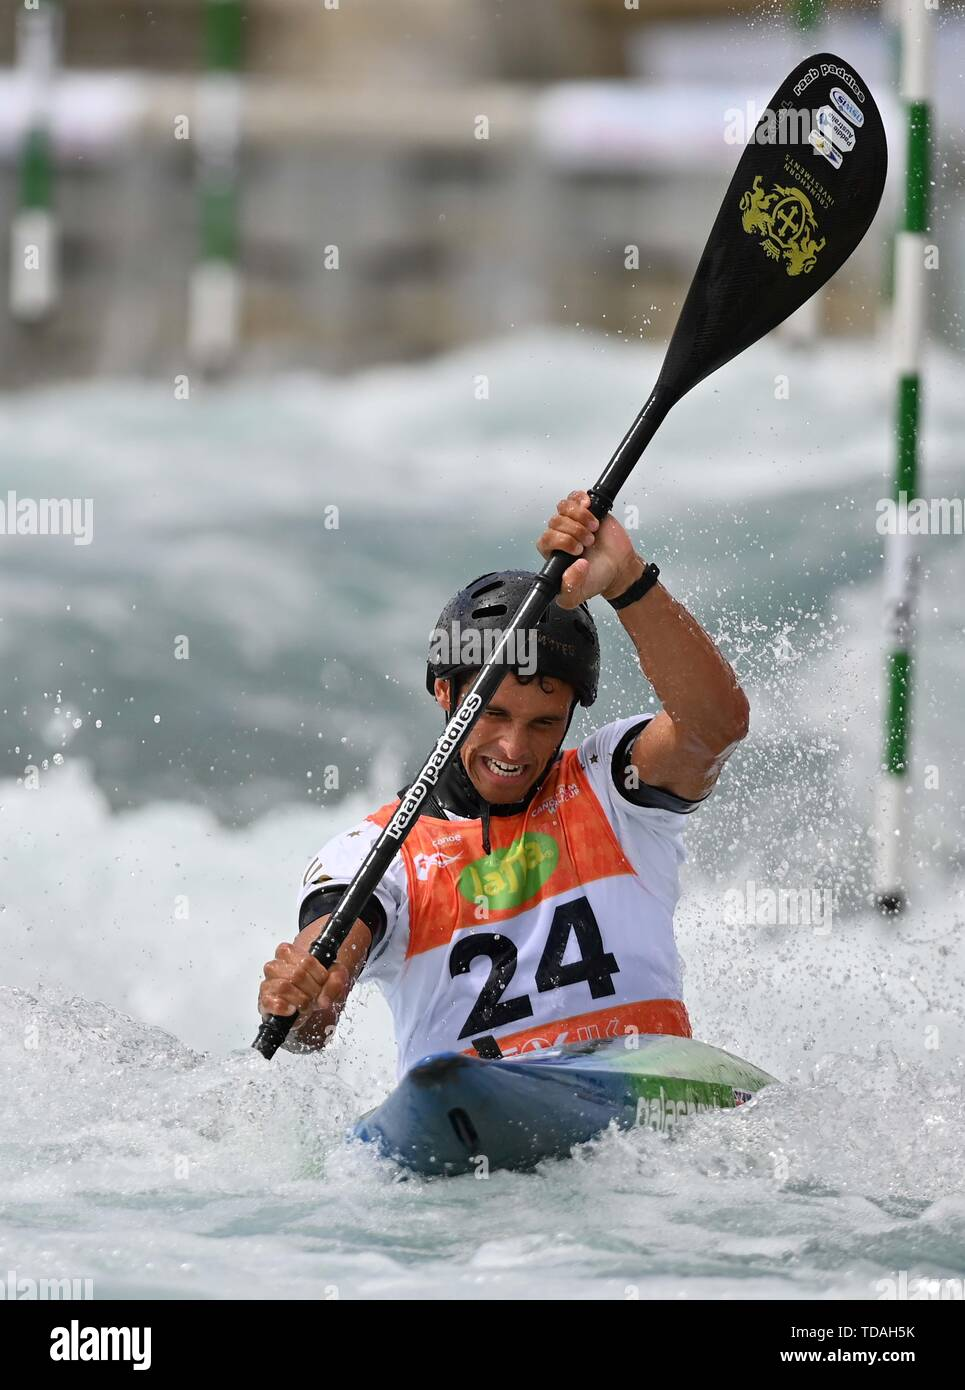 Lee Valley, Hertforshire, UK. 14th June, 2018.  Timothy Anderson (AUS). 2019 ICF London canoe slalom world cup. Lee valley white water centre. Mens K1 Kayak. Hertfordshire. UK. 14/06/2019. Credit: Sport In Pictures/Alamy Live News - Stock Image